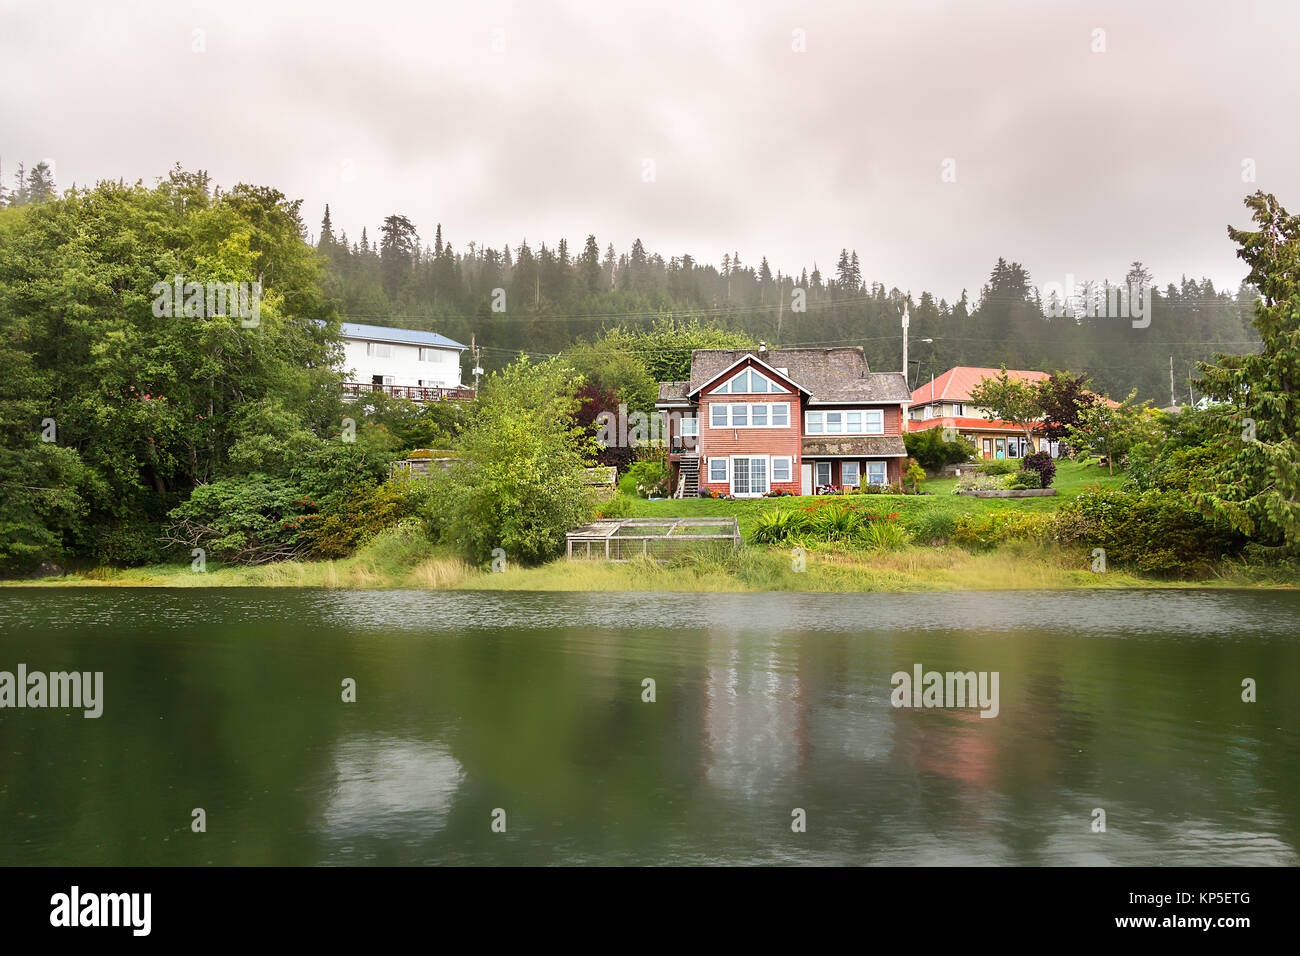 View of Houses at Oceanview Dr road in Queen Charlotte Island - Stock Image